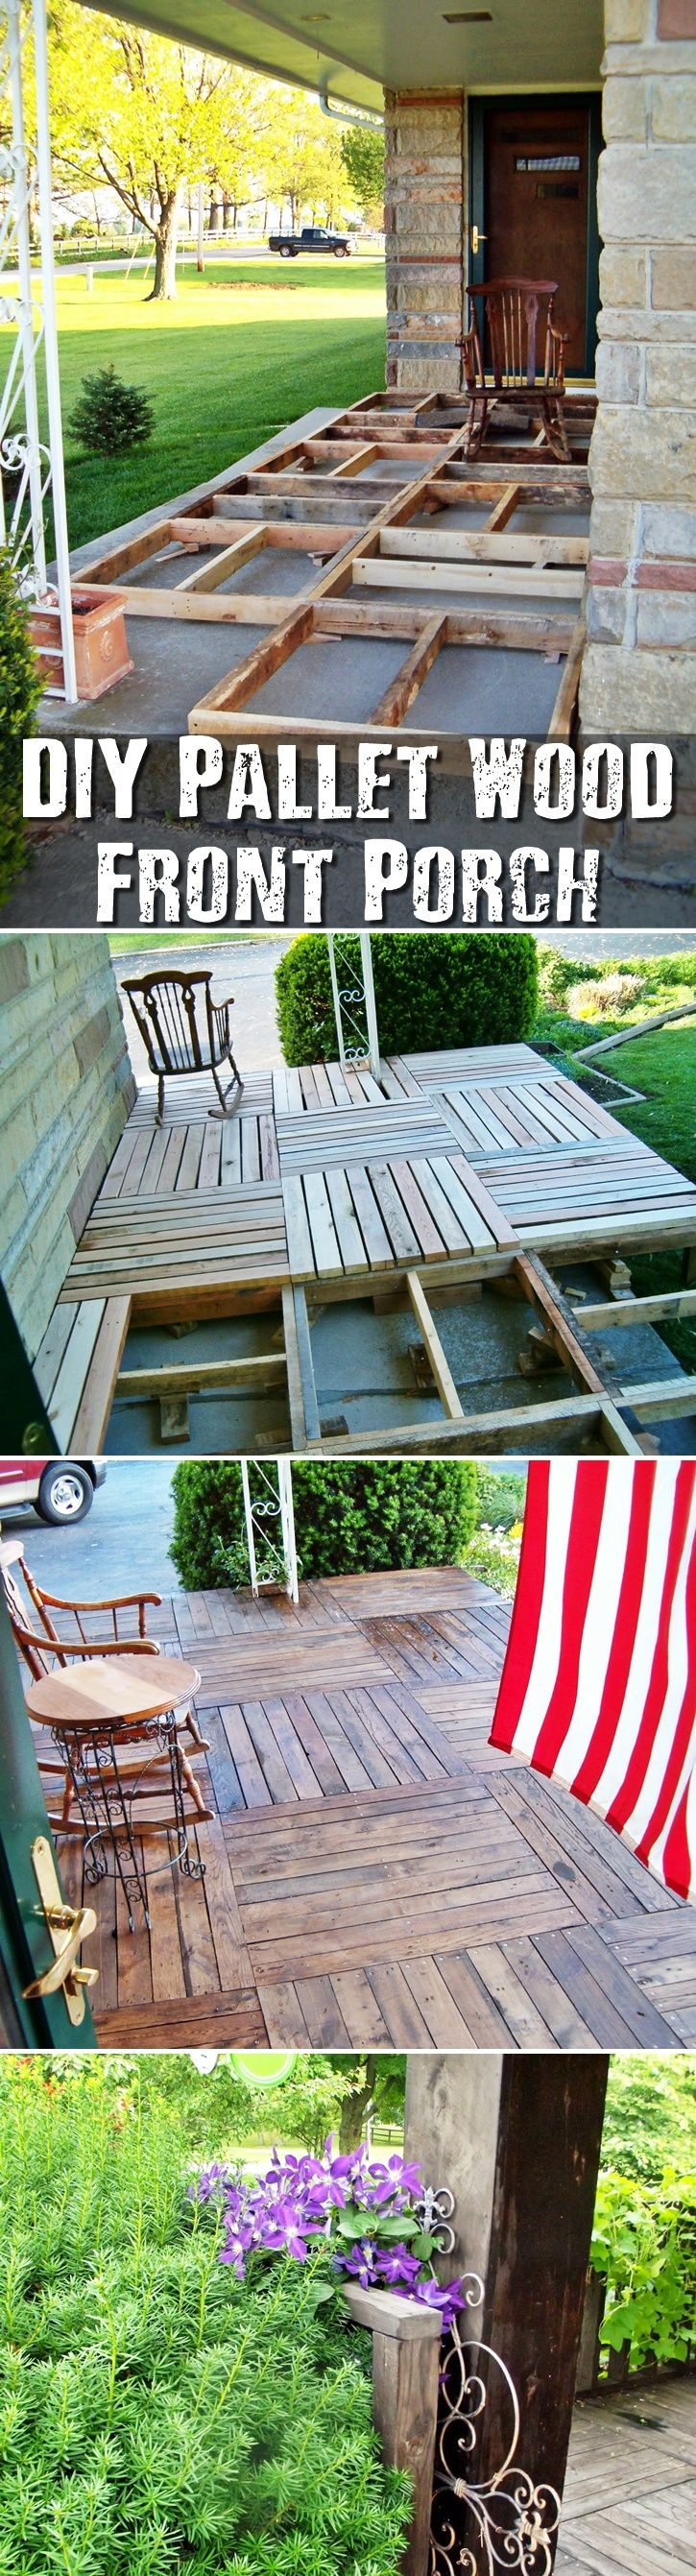 DIY Pallet Wood Front Porch This